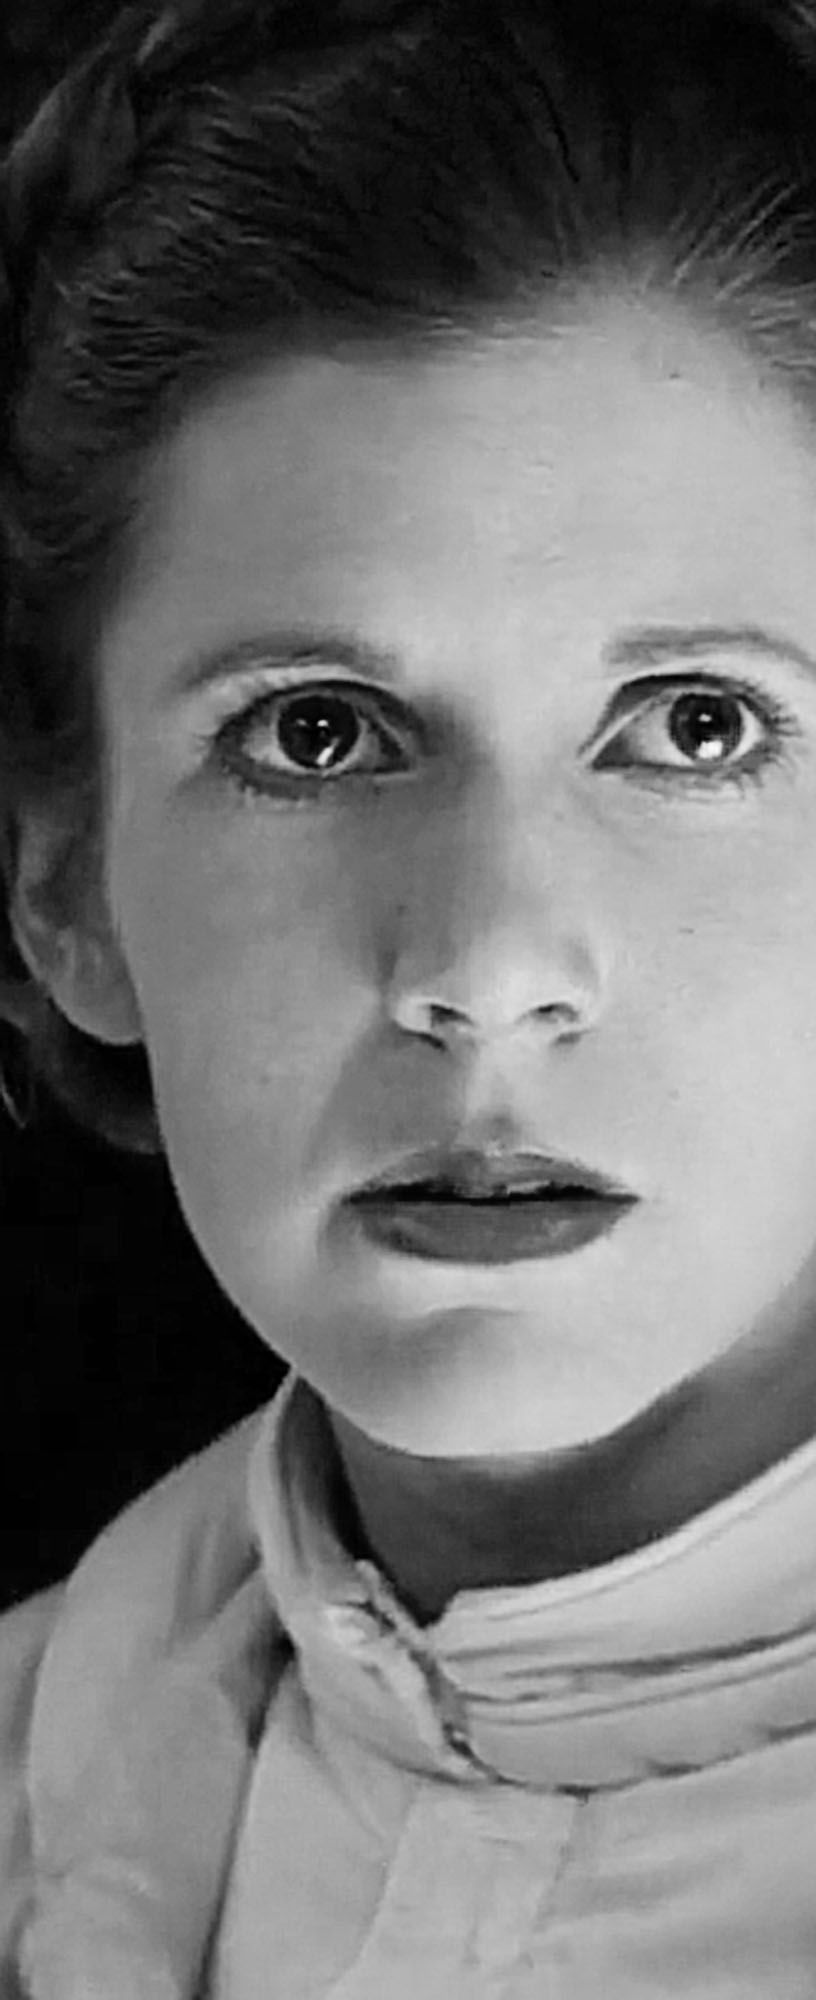 Star Wars Empire Strikes - Carrie Fisher